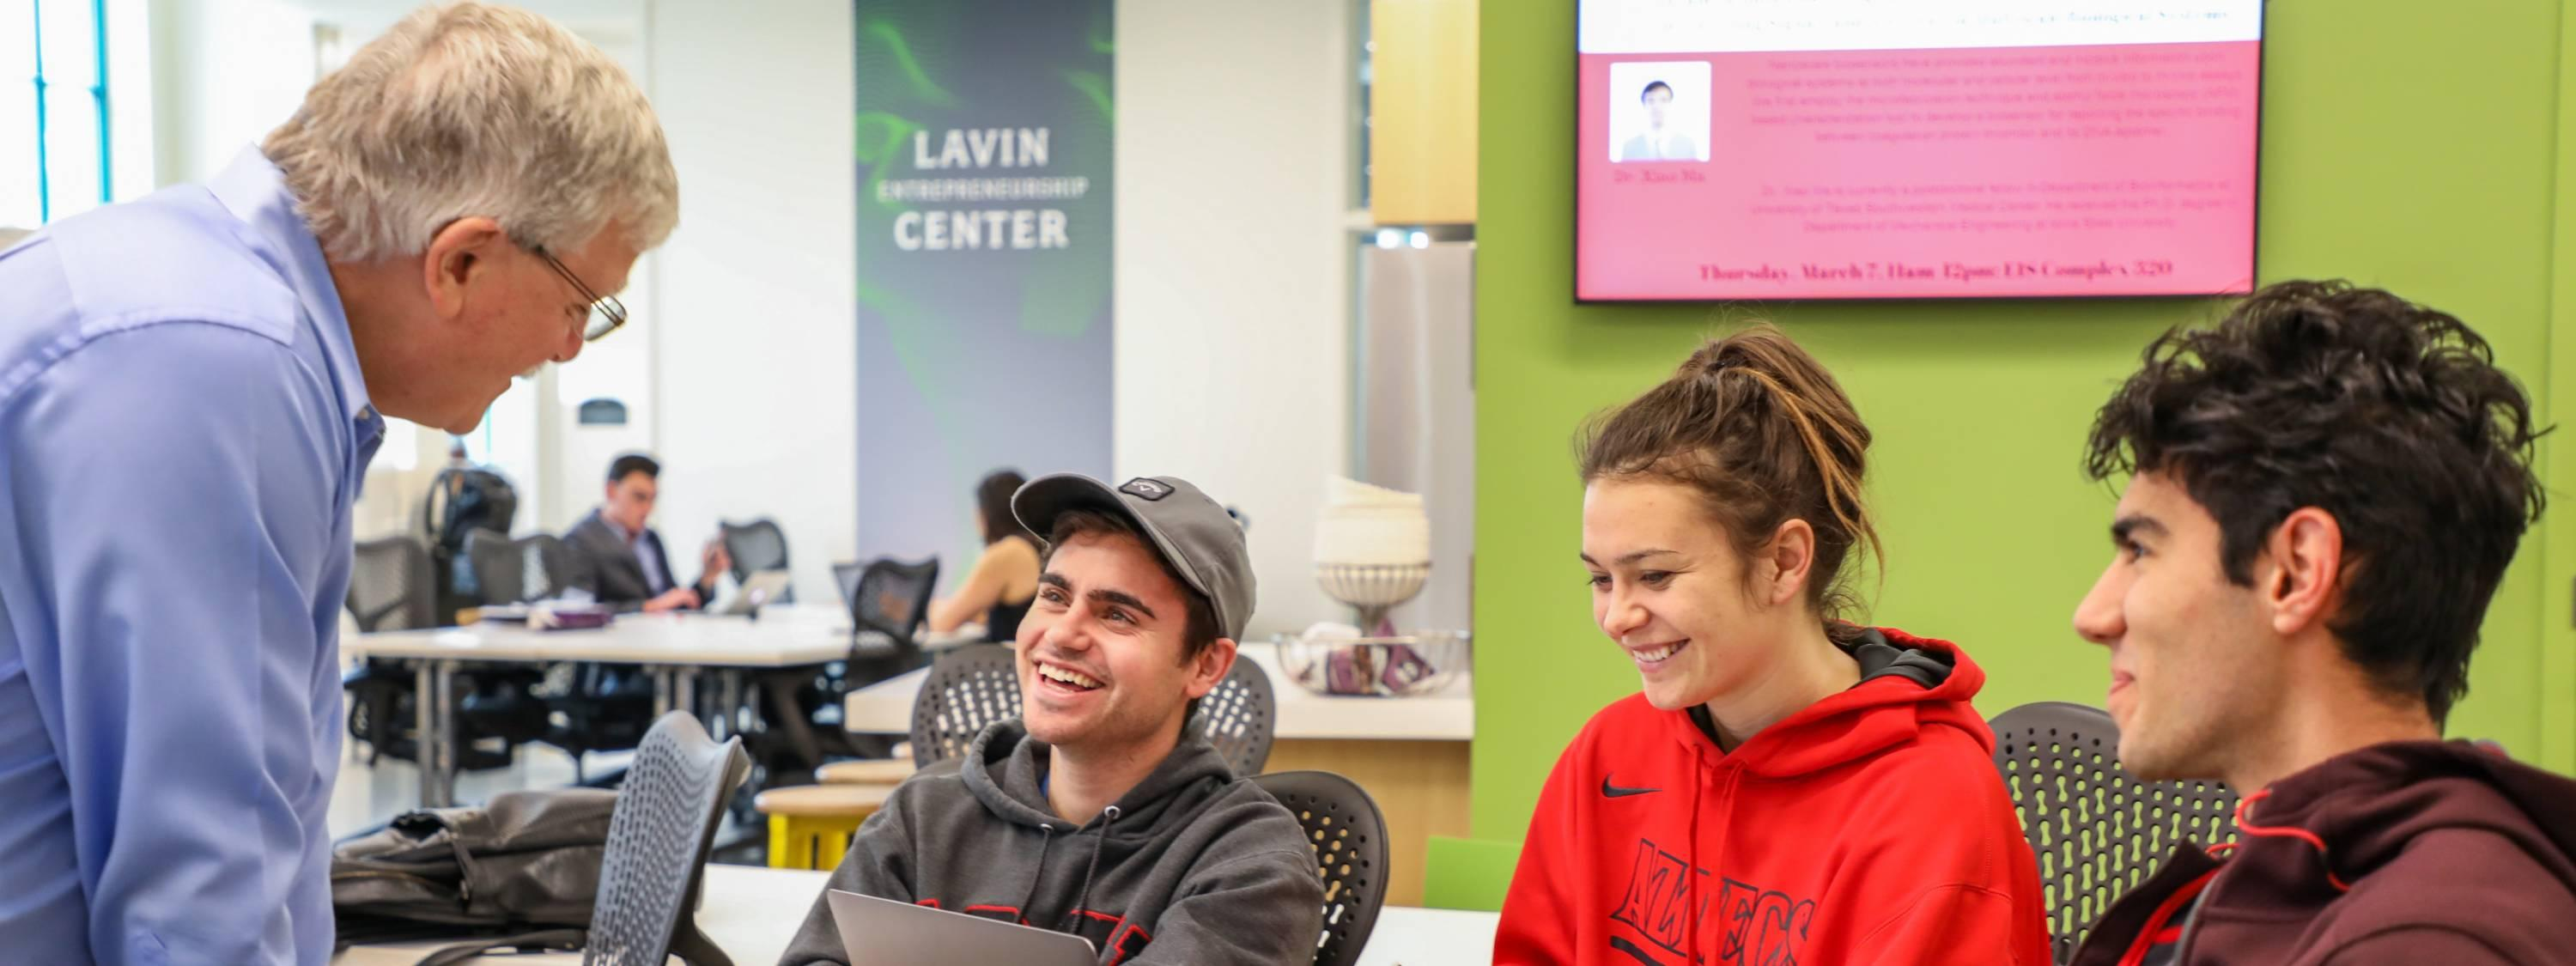 Students at Lavin Center